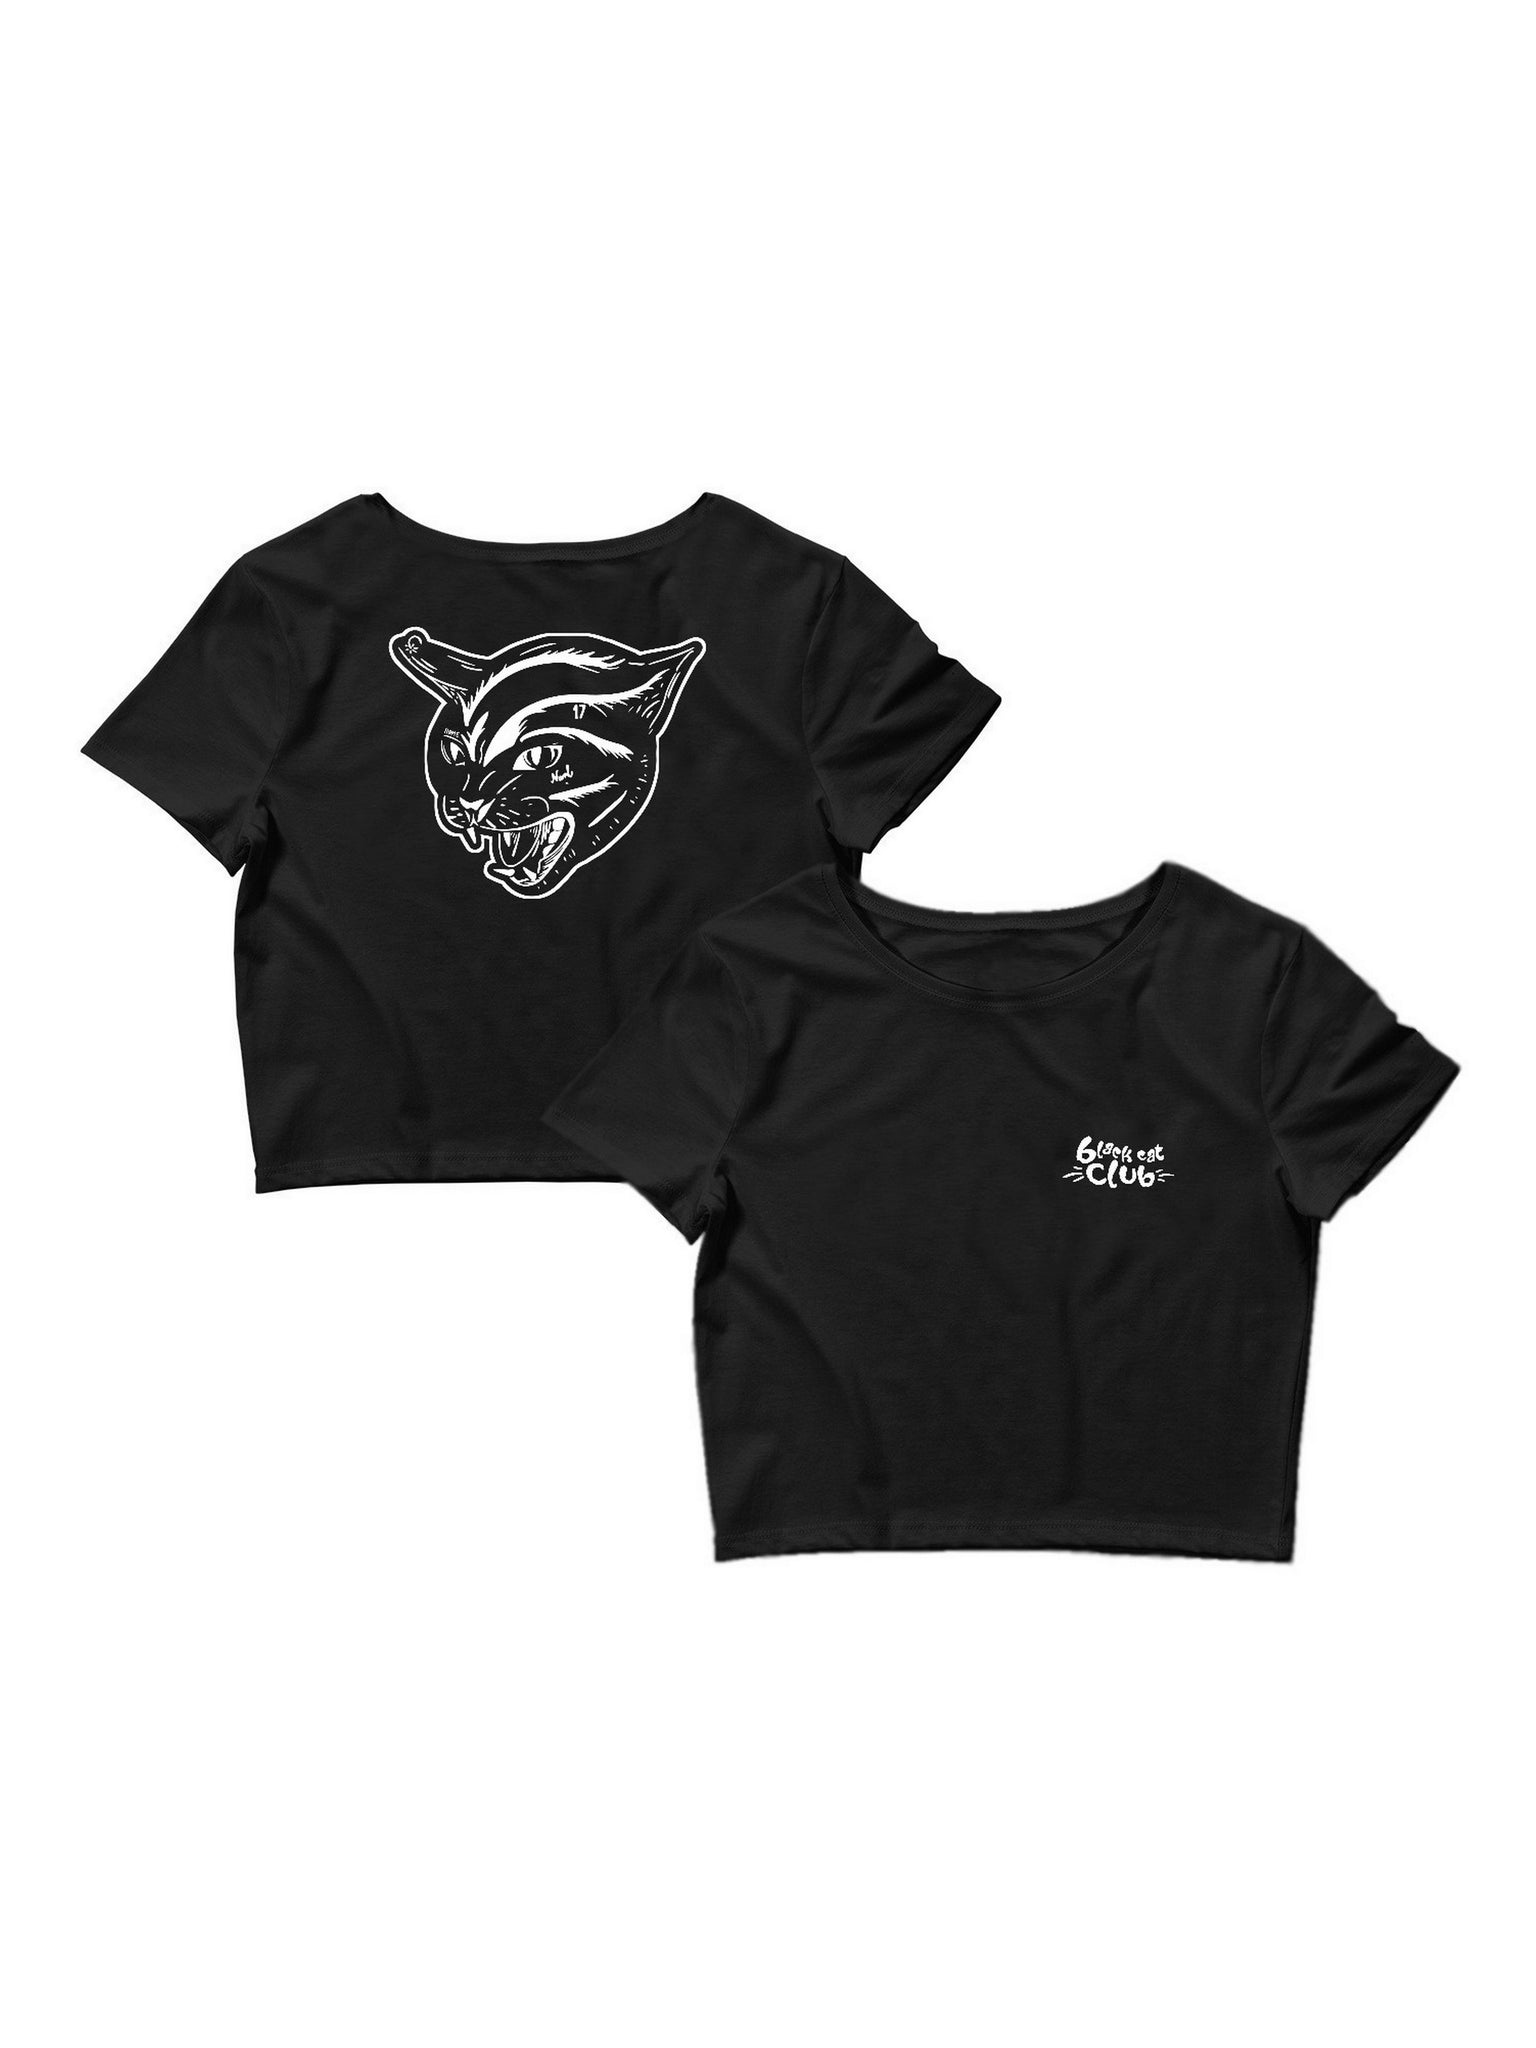 Crop top black cat club noir